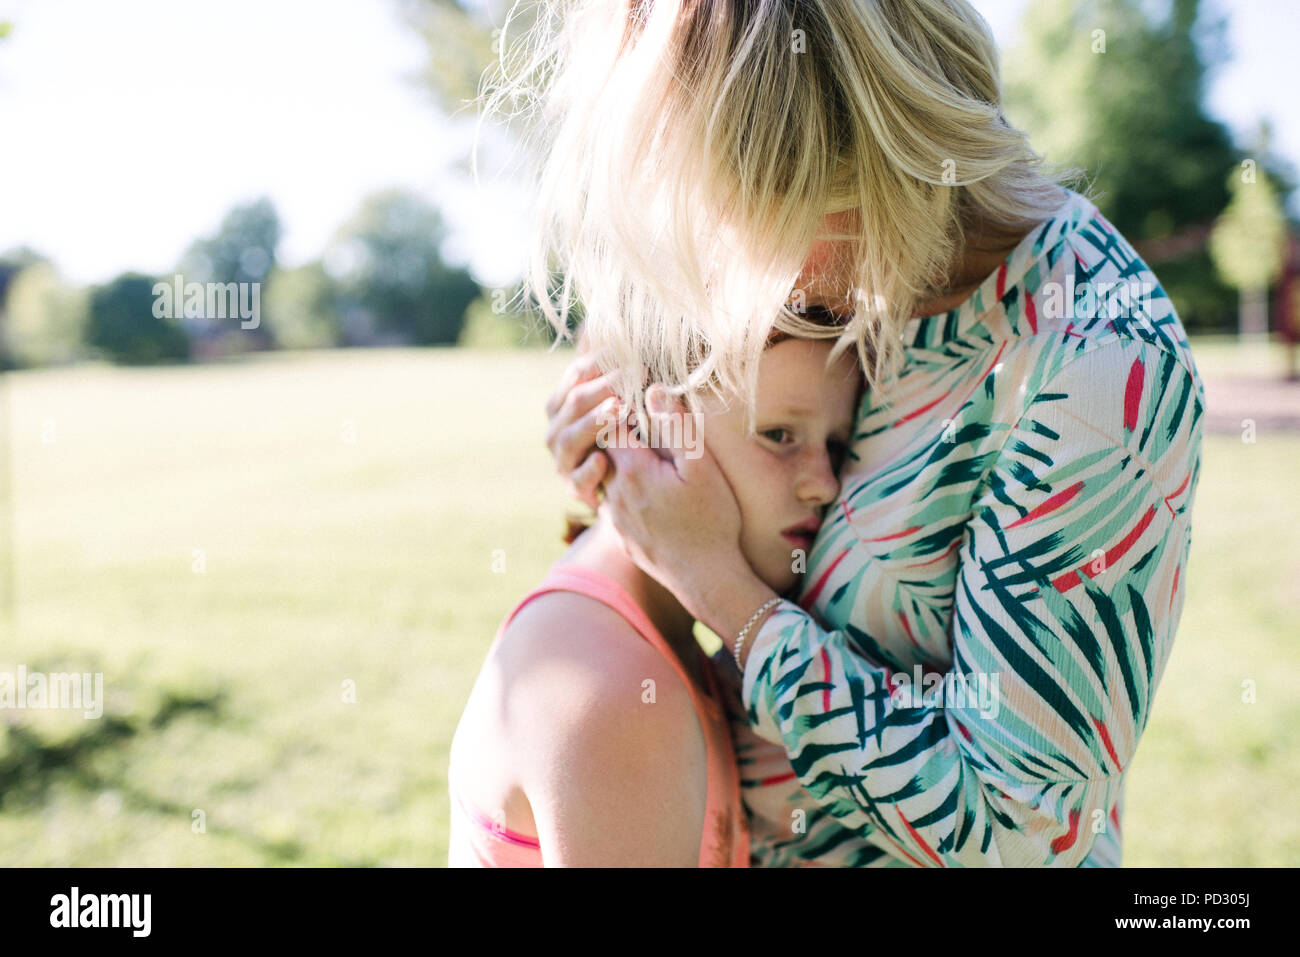 Mother consoling daughter in park - Stock Image